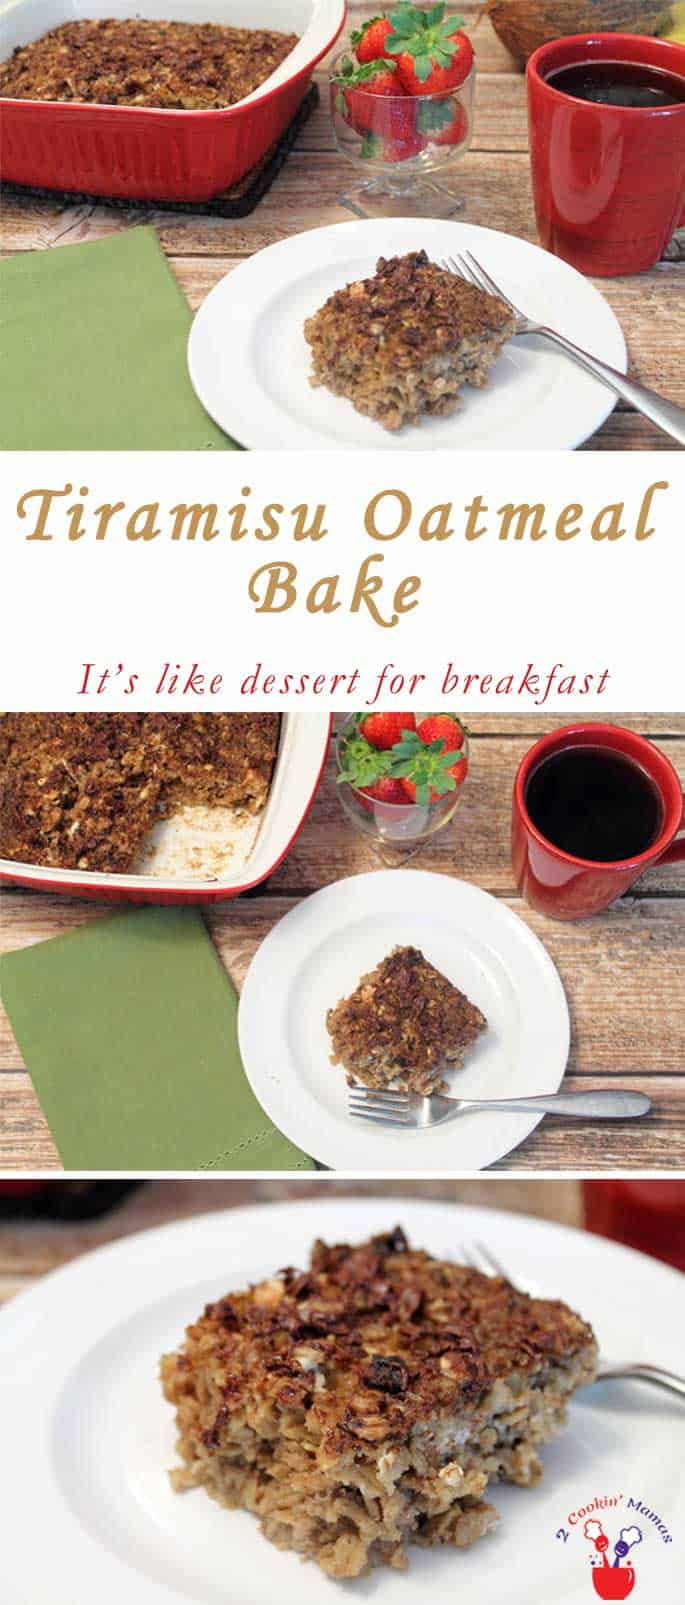 Tiramisu Oatmeal Bake - Dessert for Breakfast